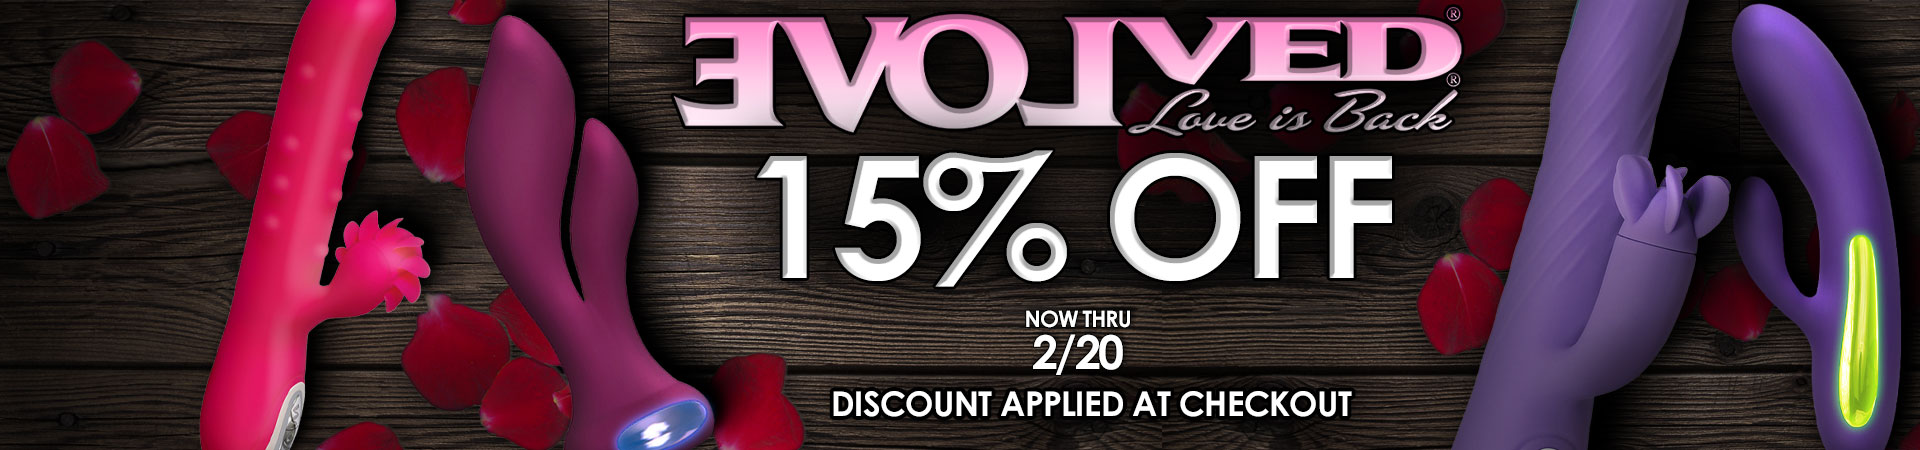 Save 15% On All Evolved Novelties Products - Discount Applied At Checkout - Now Thru 2/20